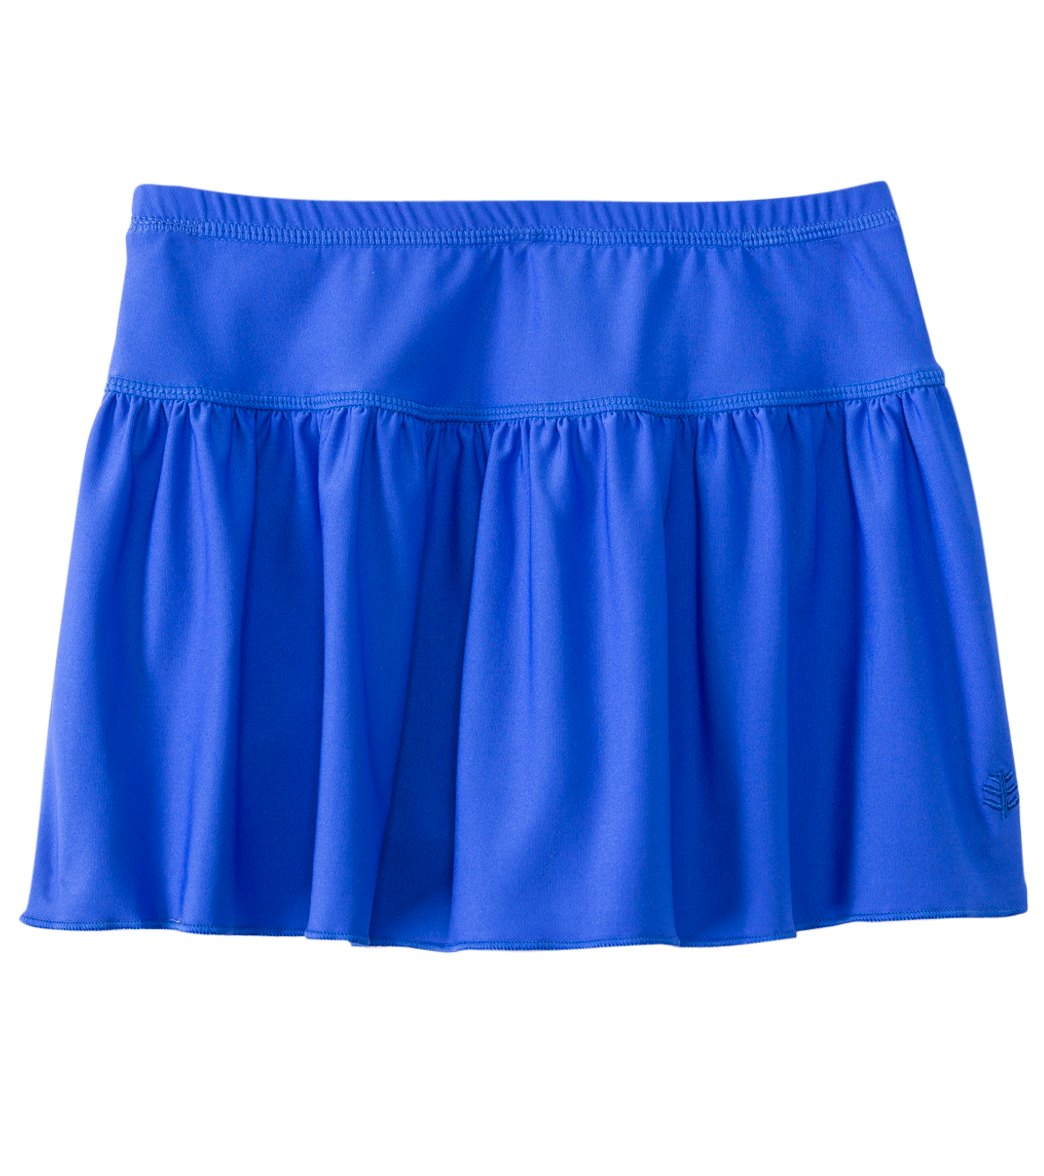 909e5feacd Coolibar Girls' UPF 50+ Solid Swim Skirt (4-12) at SwimOutlet.com